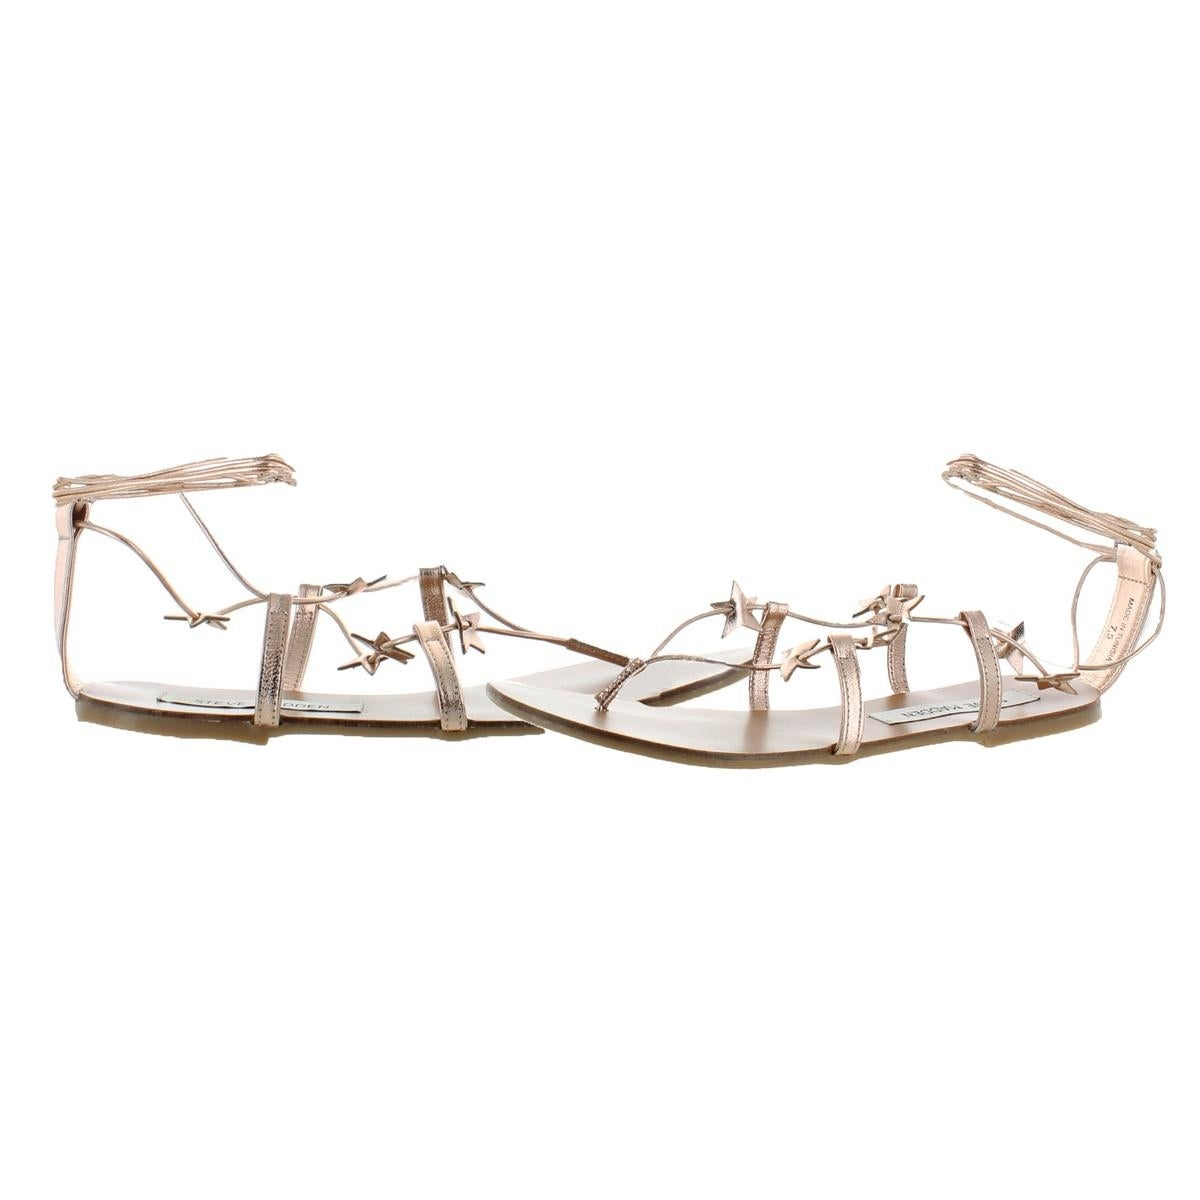 61a1d8c88cf9 Shop Steve Madden Womens Whitney Strappy Sandals Metallic Stars - Free  Shipping On Orders Over  45 - Overstock - 22804572